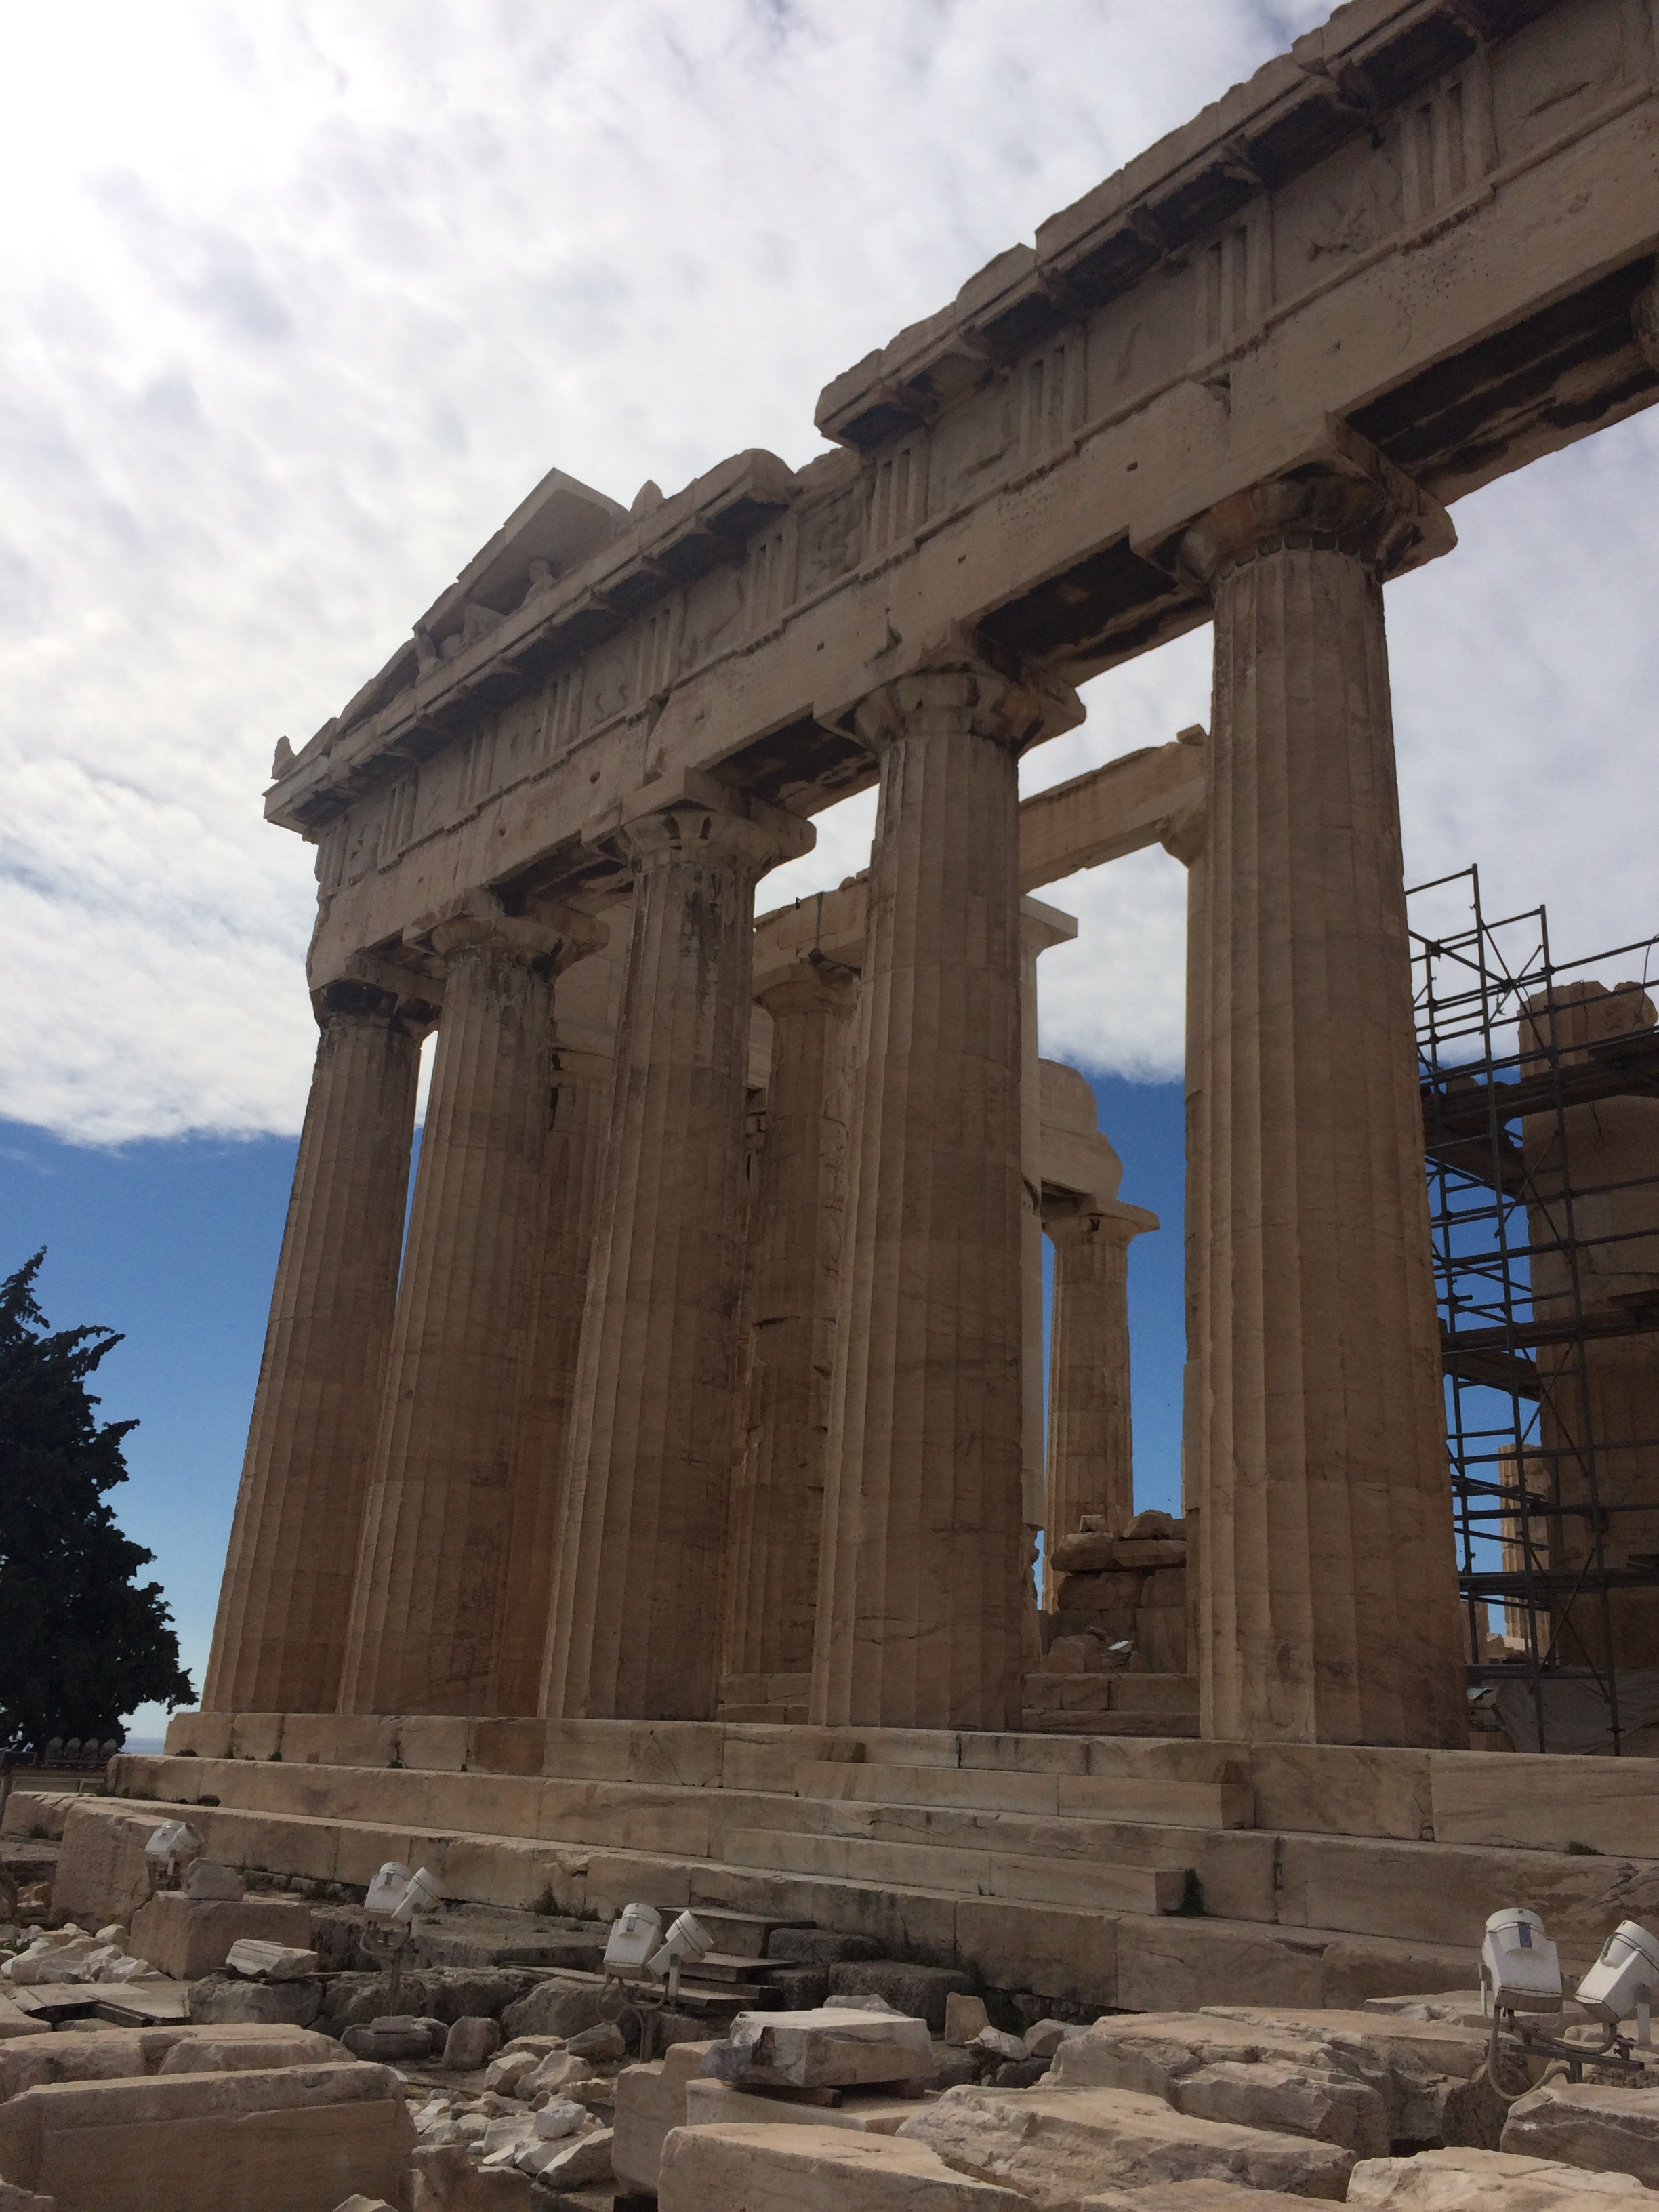 This is the Parthenon. but the sad part is we couldn't go in the building and explore that would be awesome.